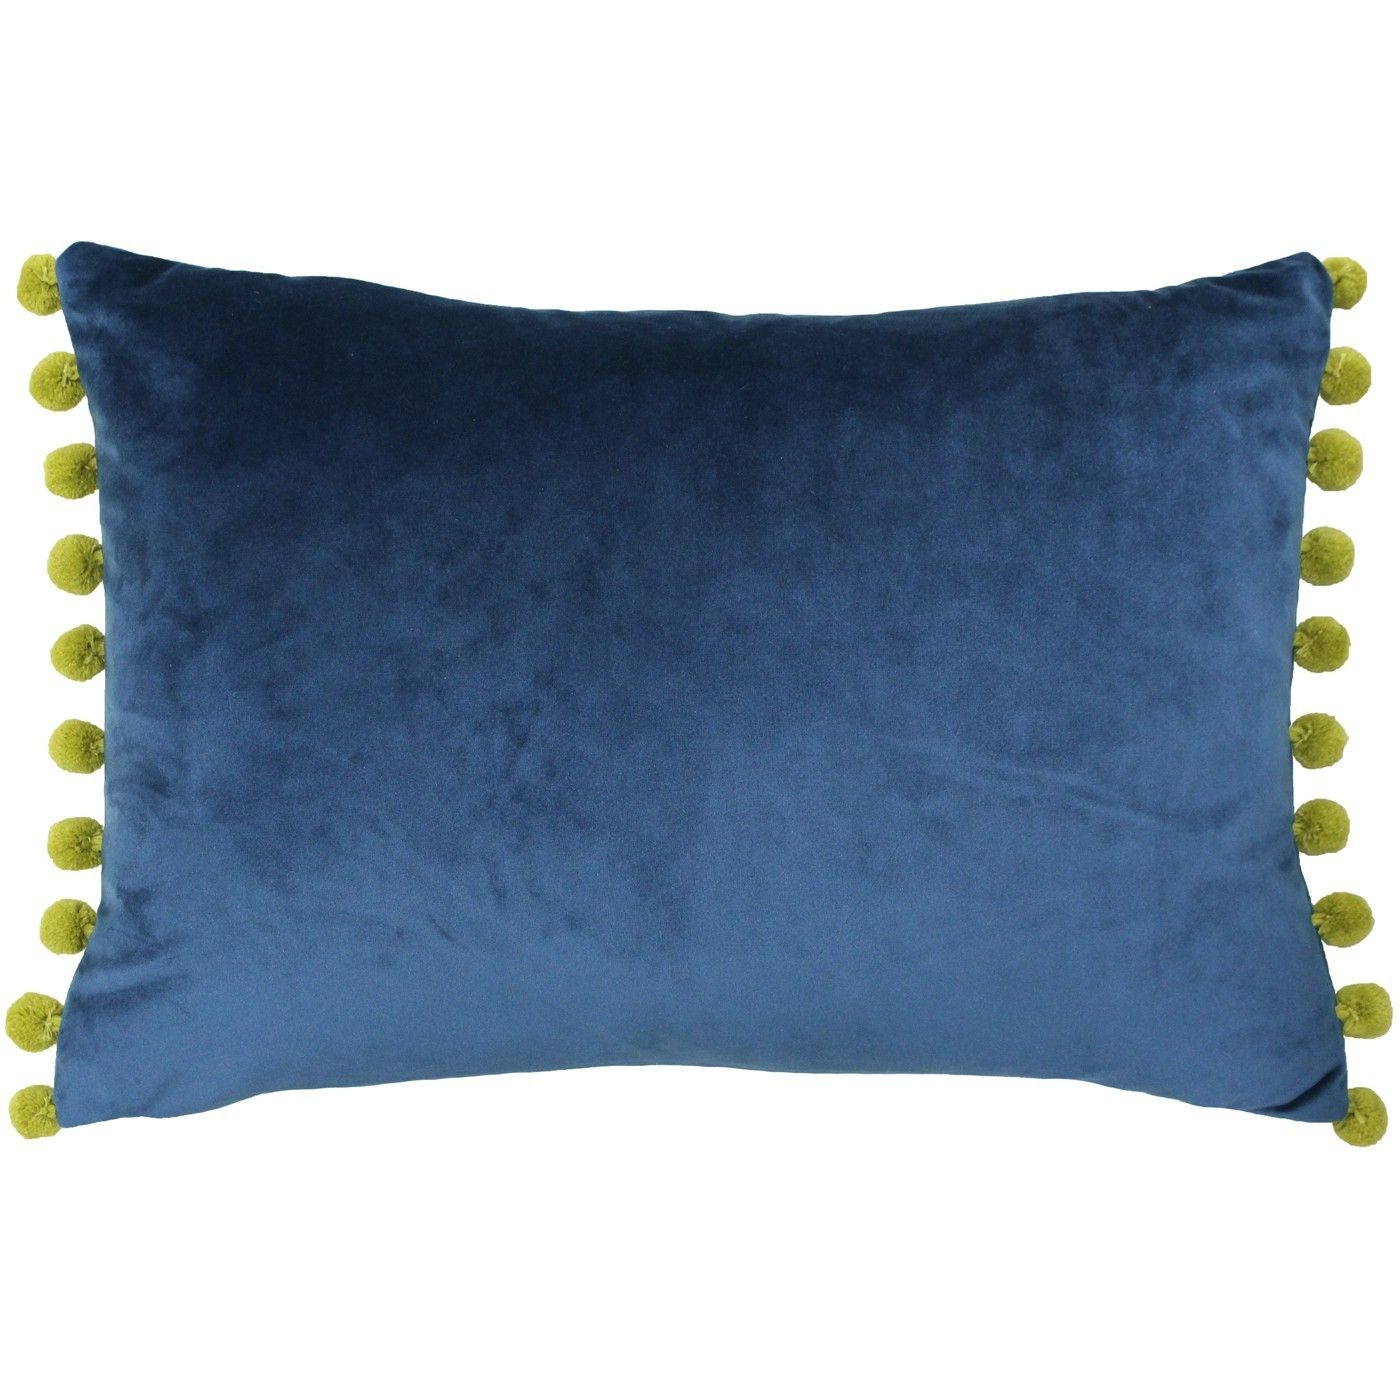 Pillow Cover with Pom Poms Blue Pom Pom